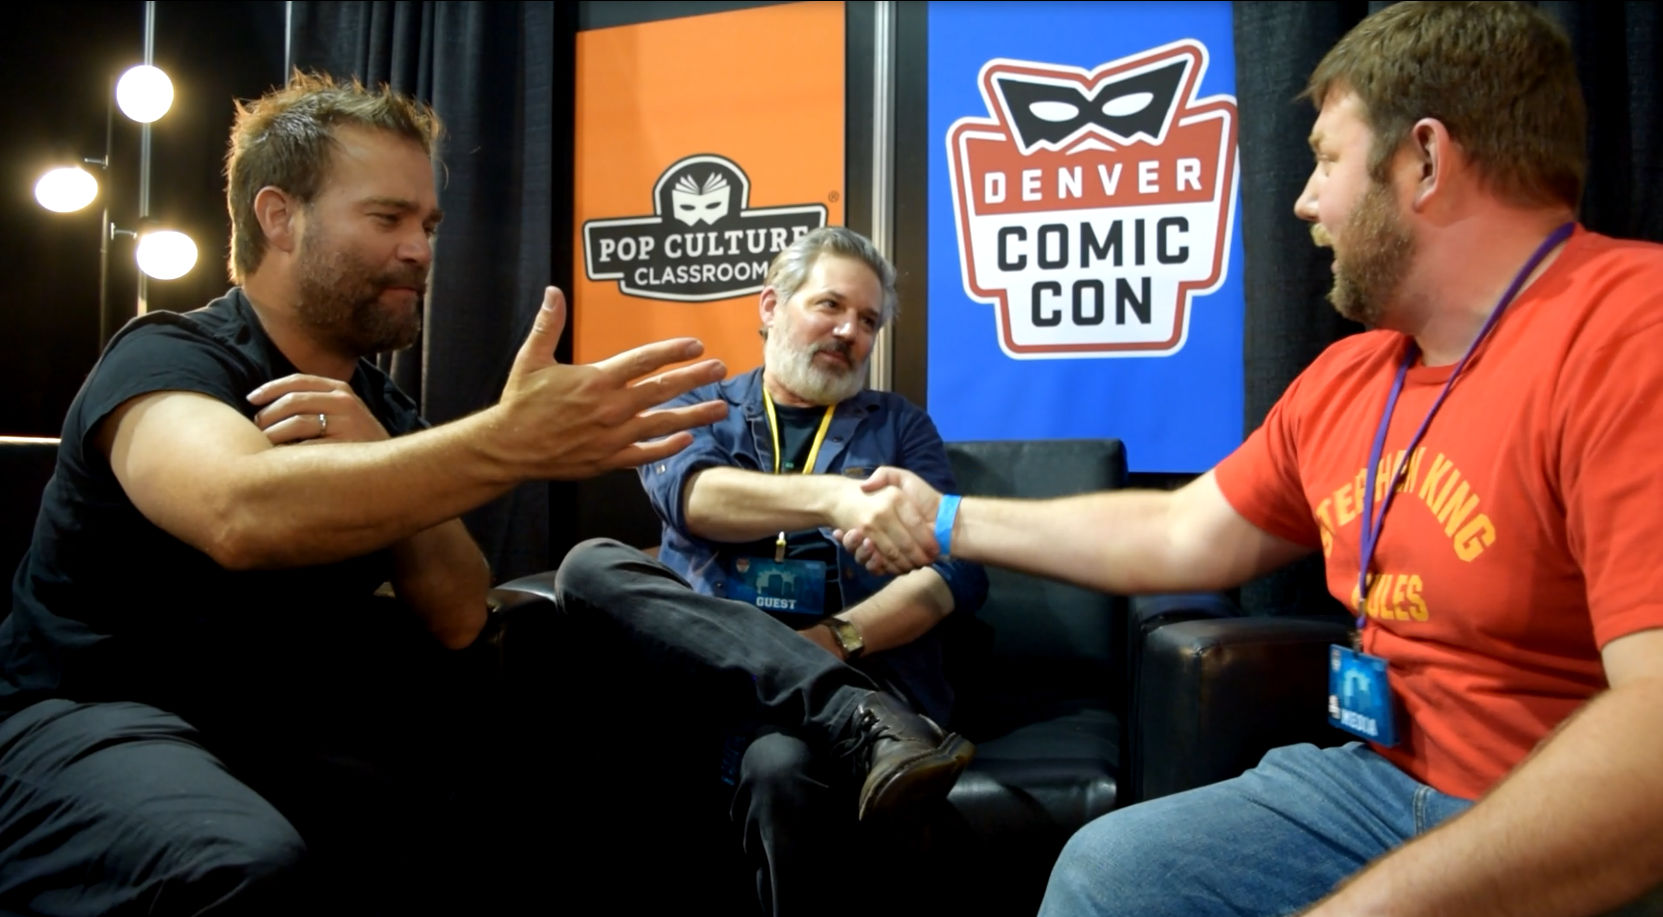 Andre Gower  &  Ryan Lambert  congratulate  Abrahm Akin  on an interview well done! Denver Comic Con 2018.